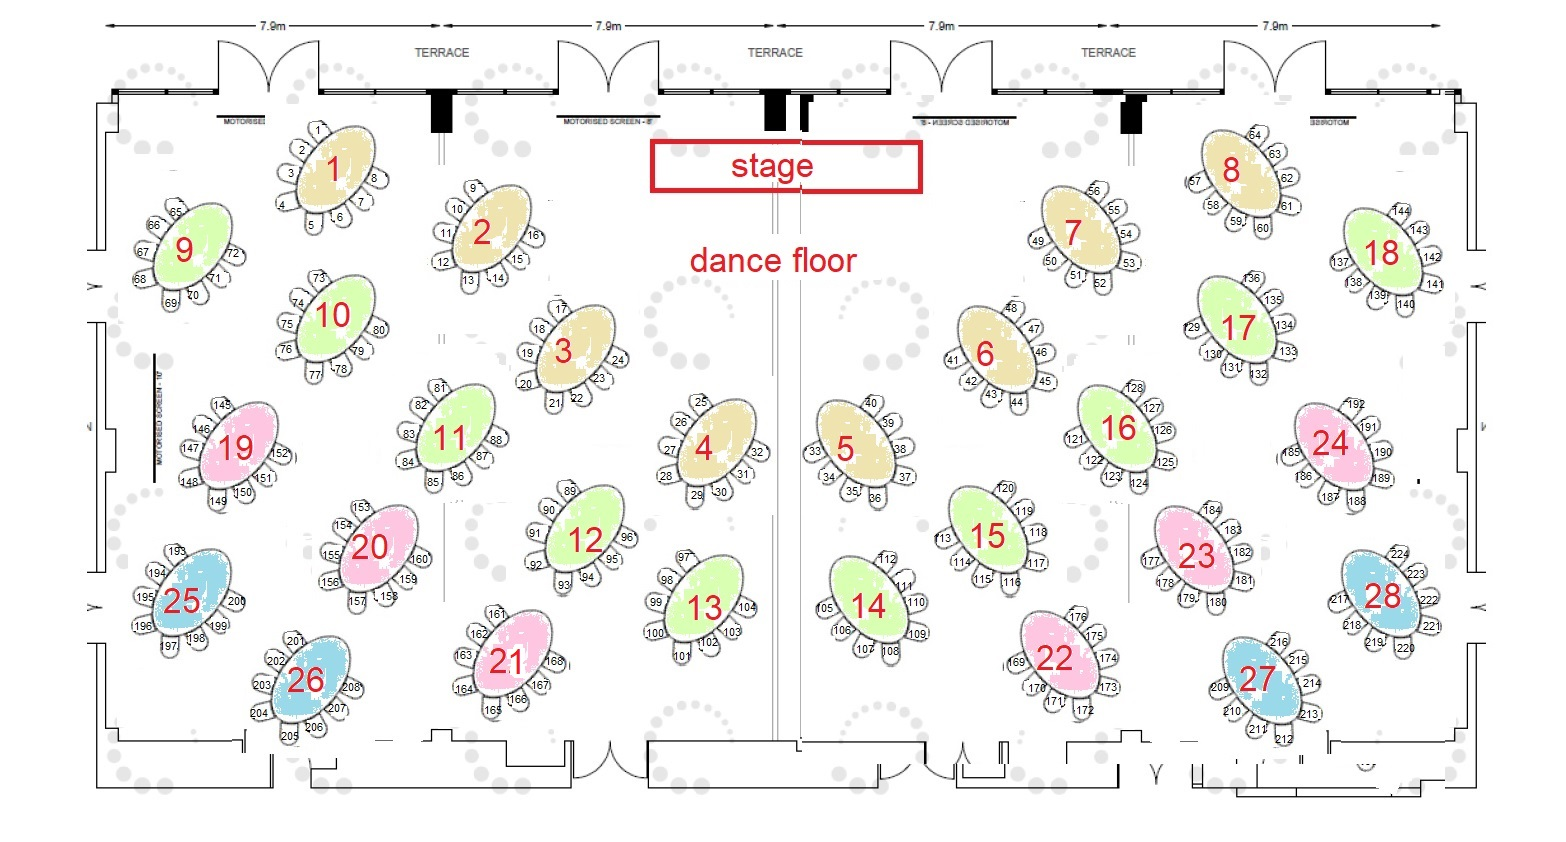 SEATING AND FLOOR PLAN